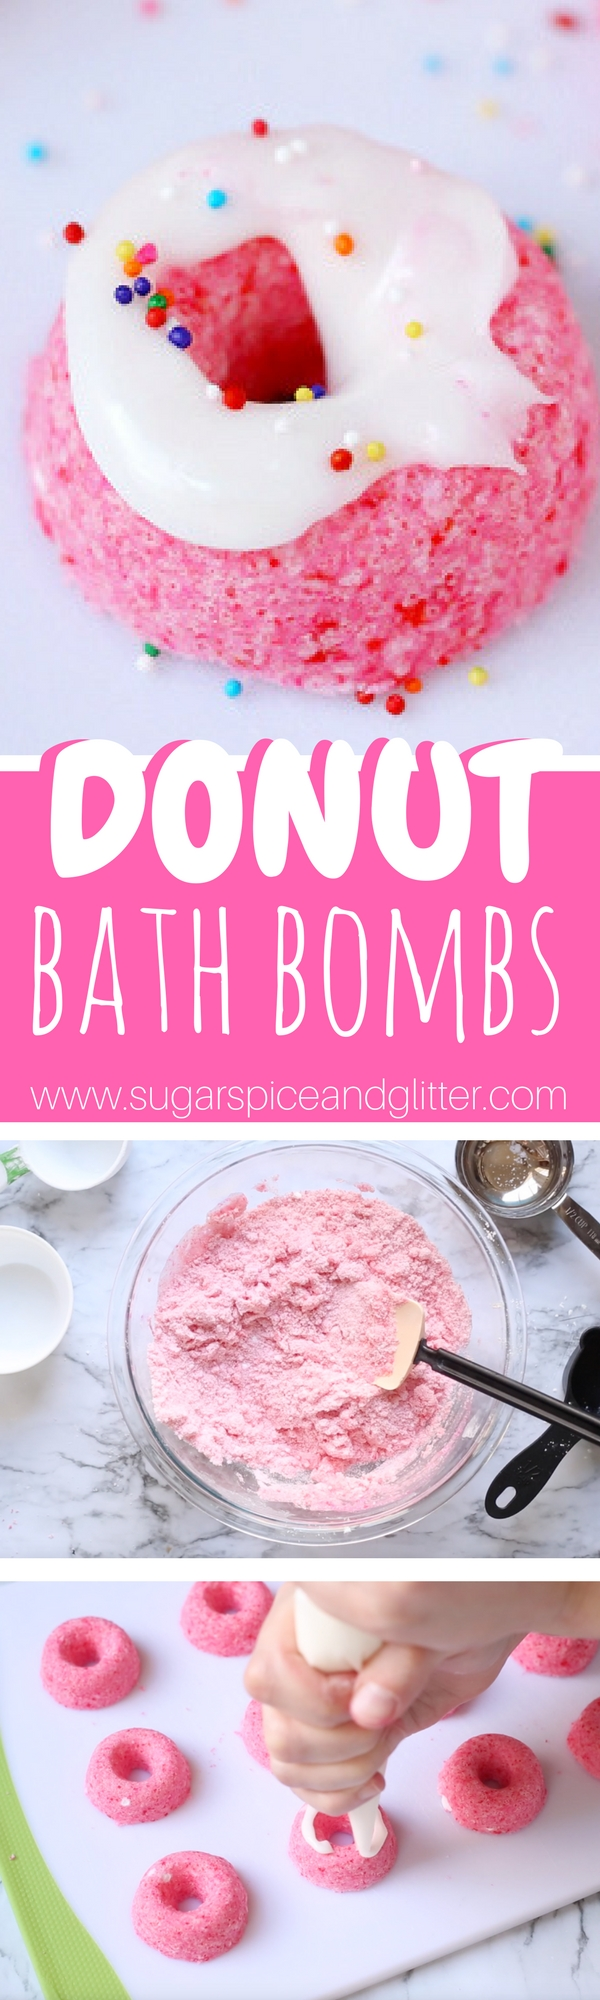 Delicious-smelling DIY Bath Bombs for a homemade gift idea with a bit of whimsy. A perfect homemade birthday gift or non-edible Valentine